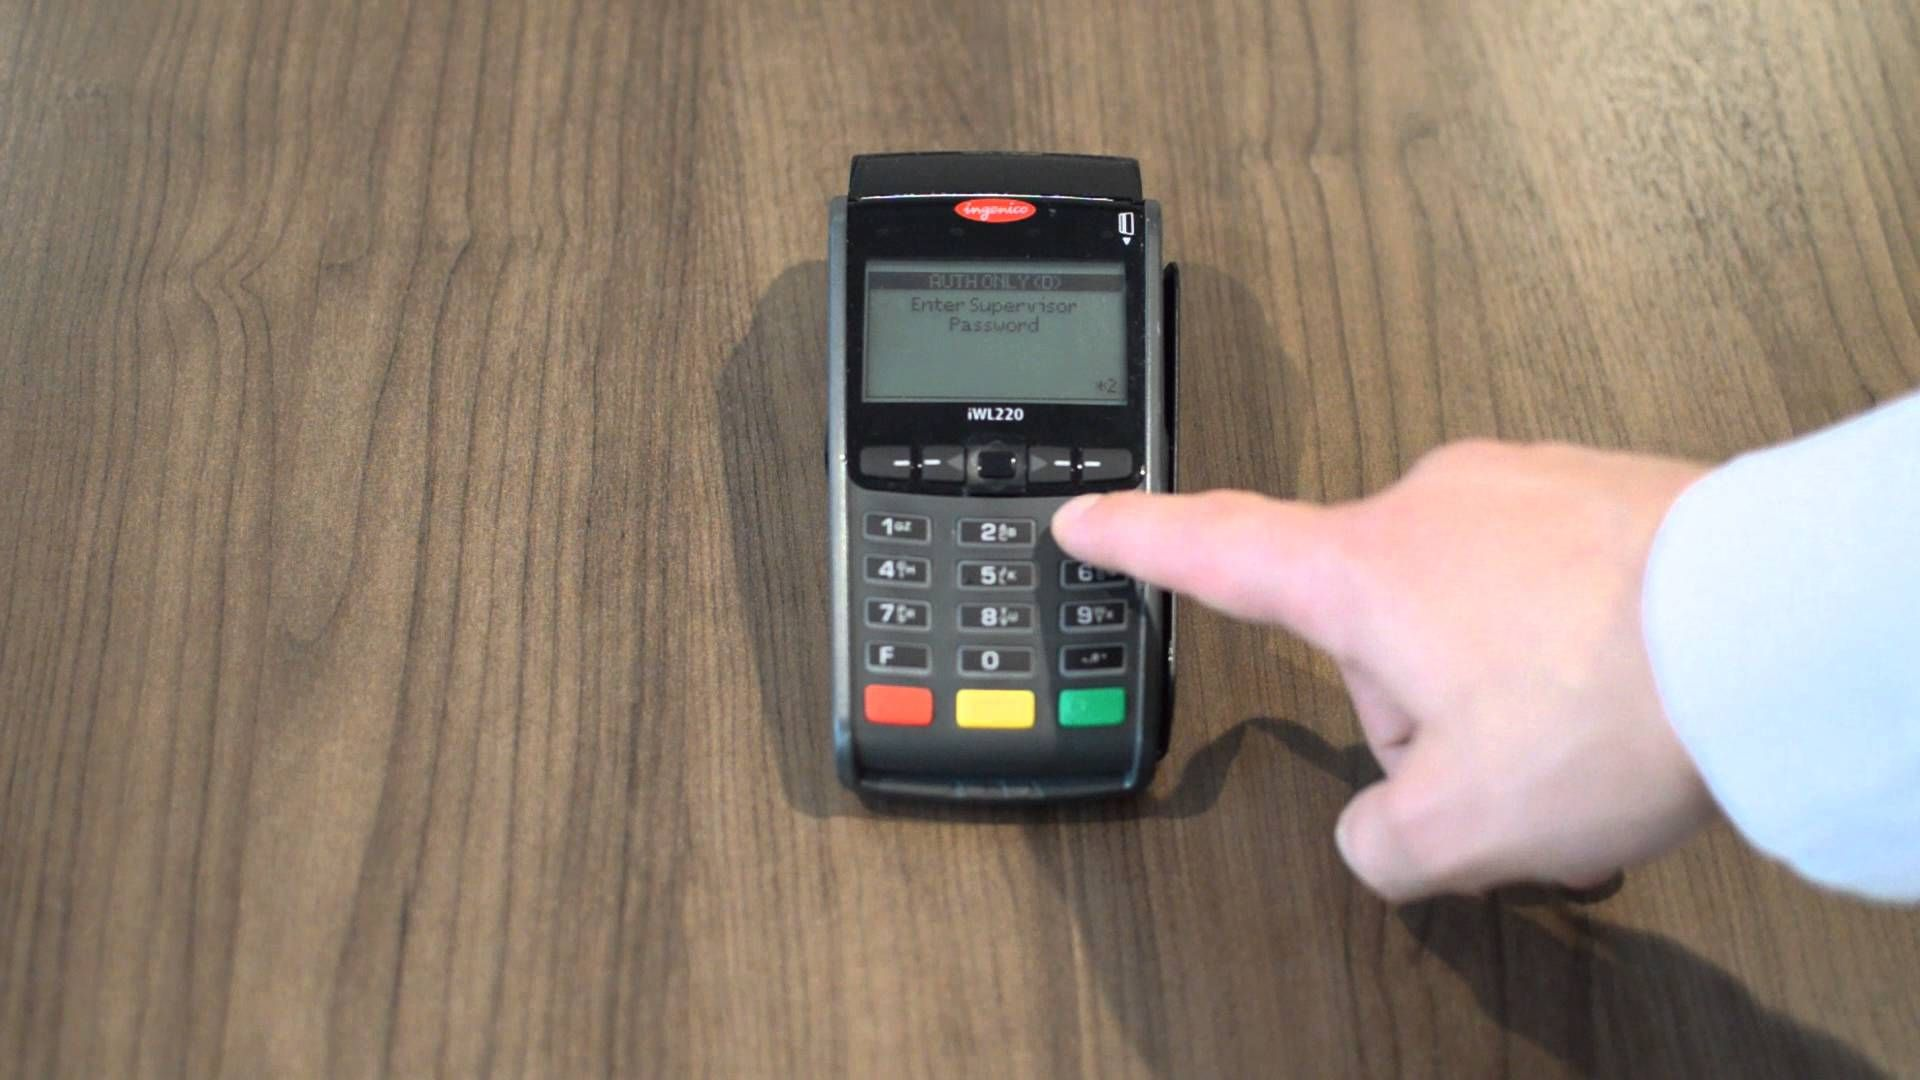 Helcim preauthorizing a credit card on an ingenico